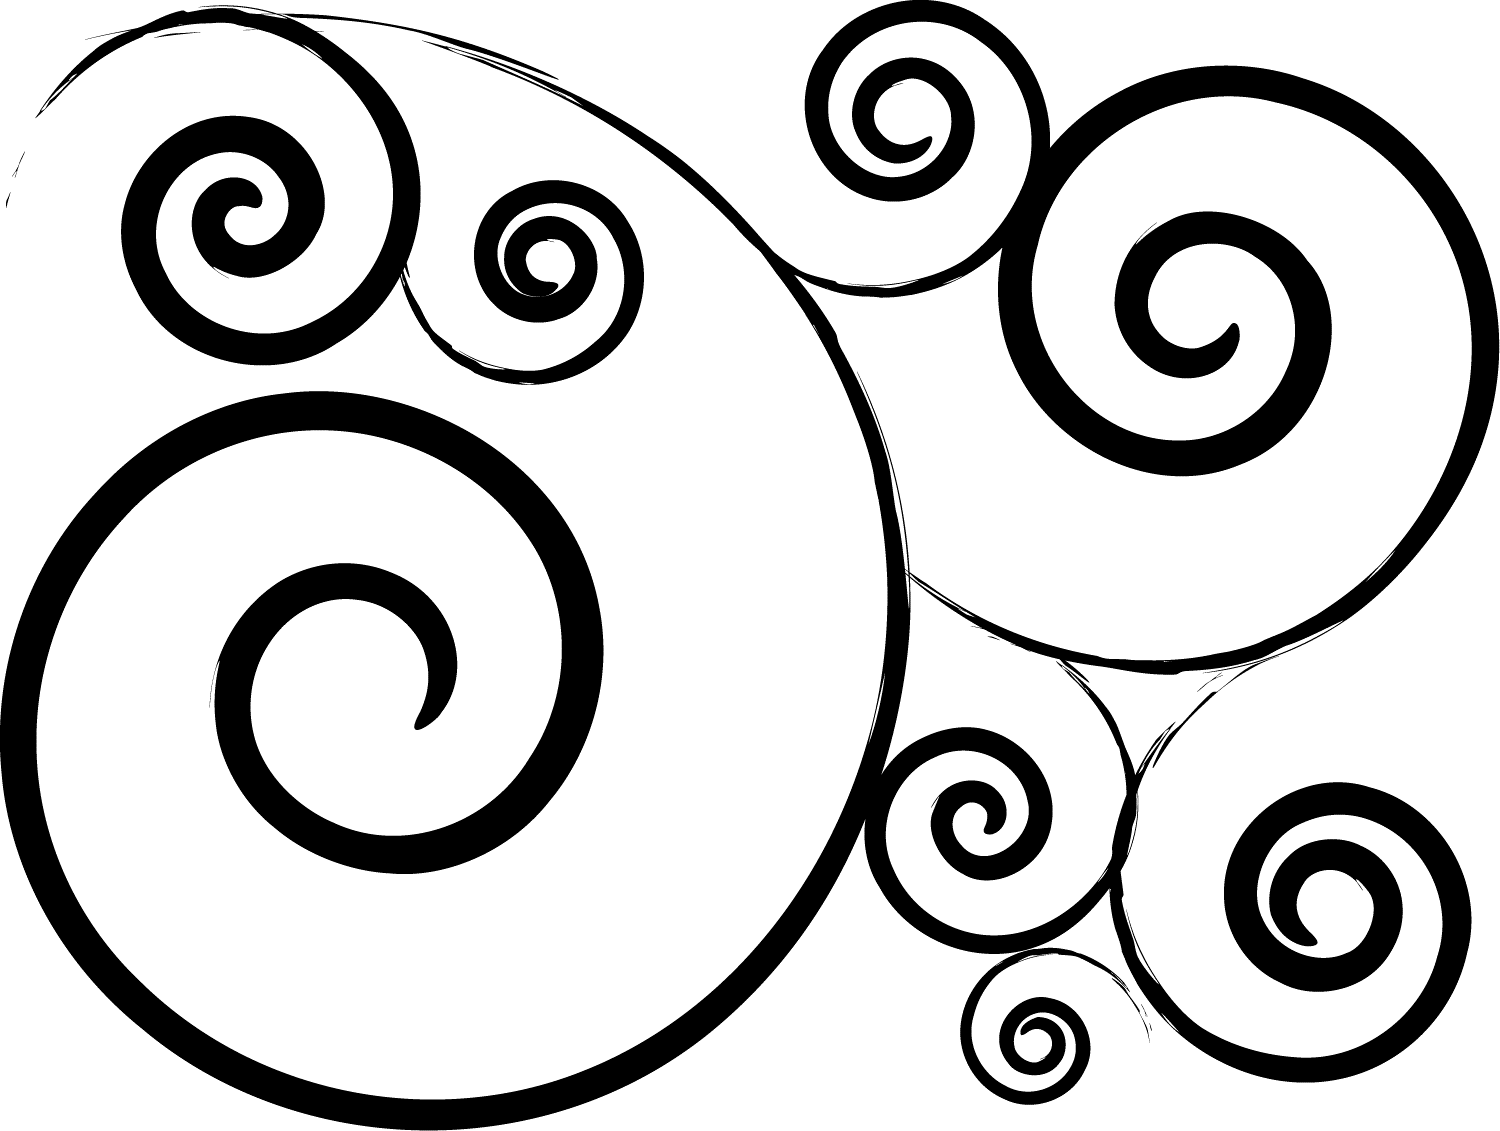 Simple Swirl Design Black And White Png 2 Png Image